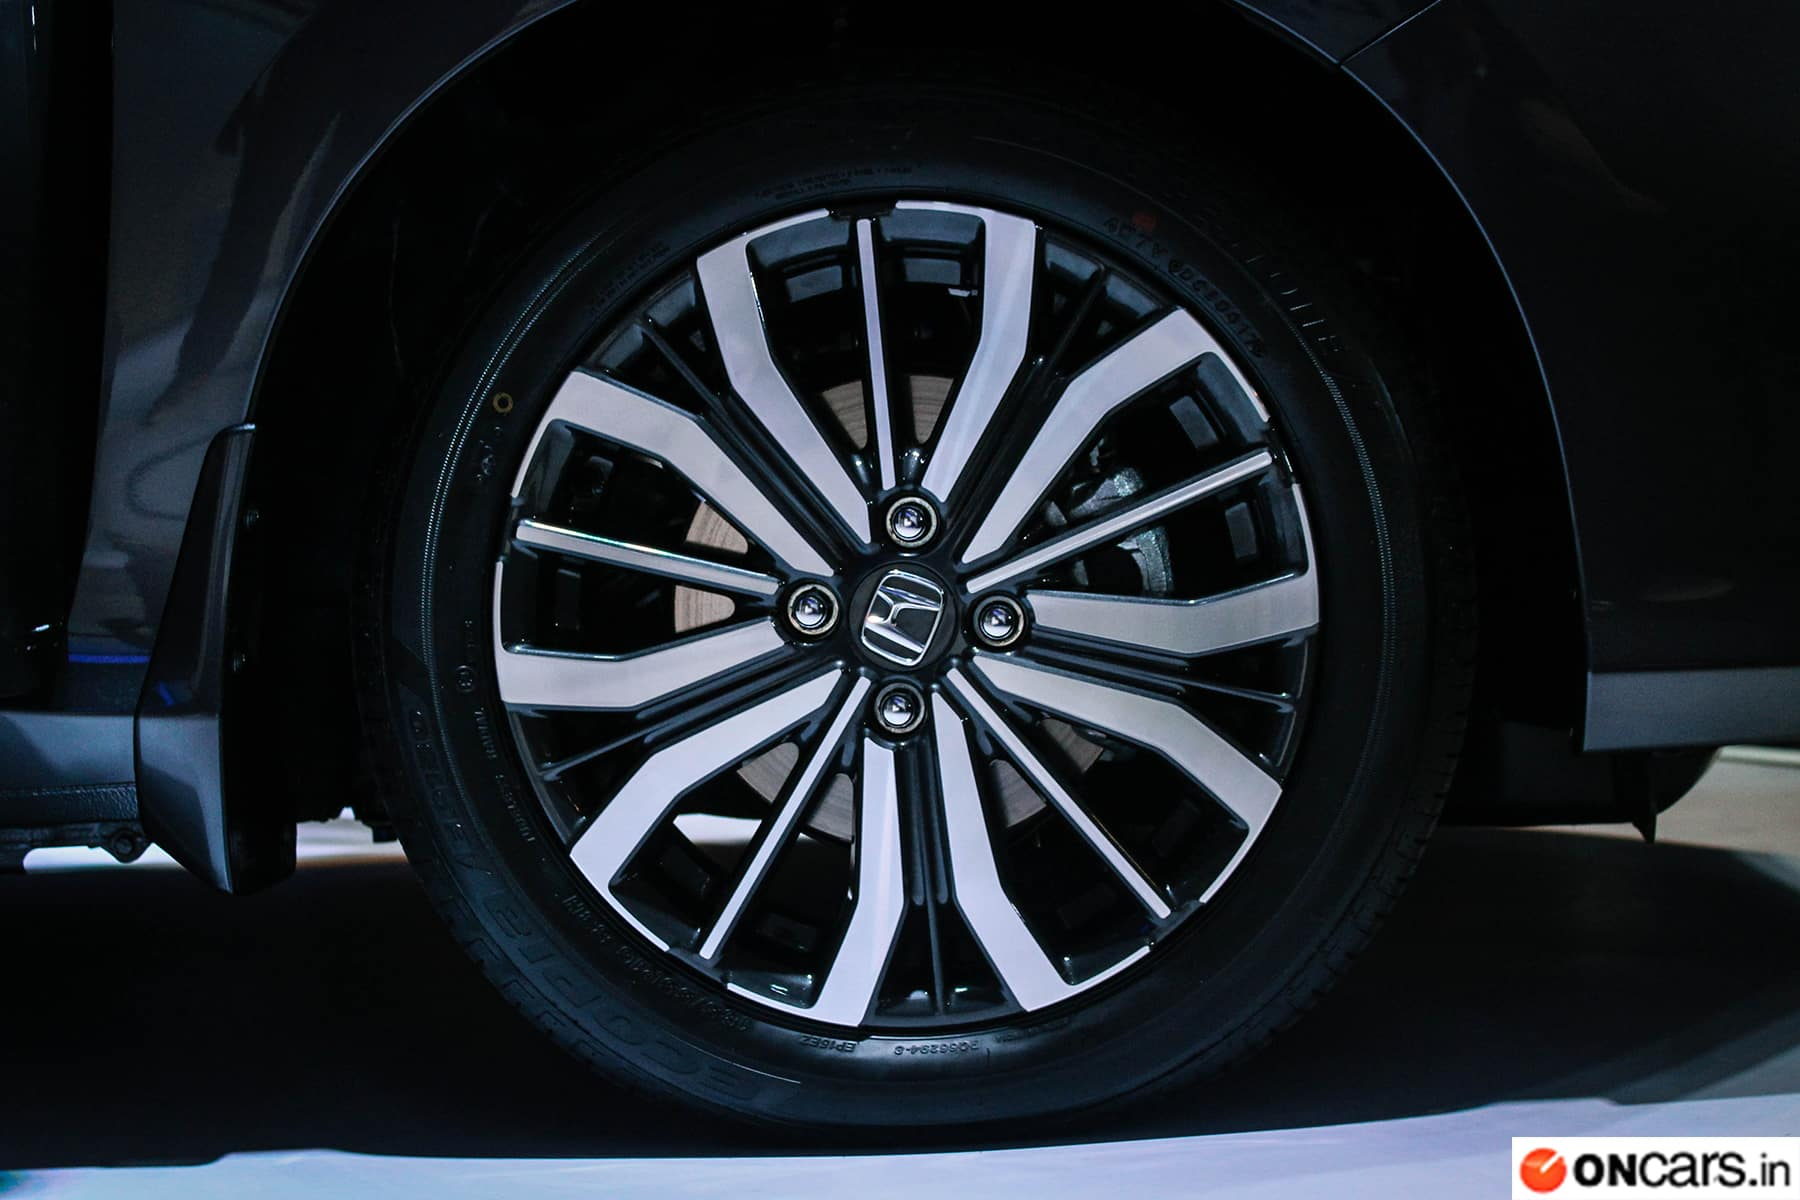 The Honda City Facelift Comes With 16 Inch Diamond Cut Alloy Wheels And Electrically Retractable